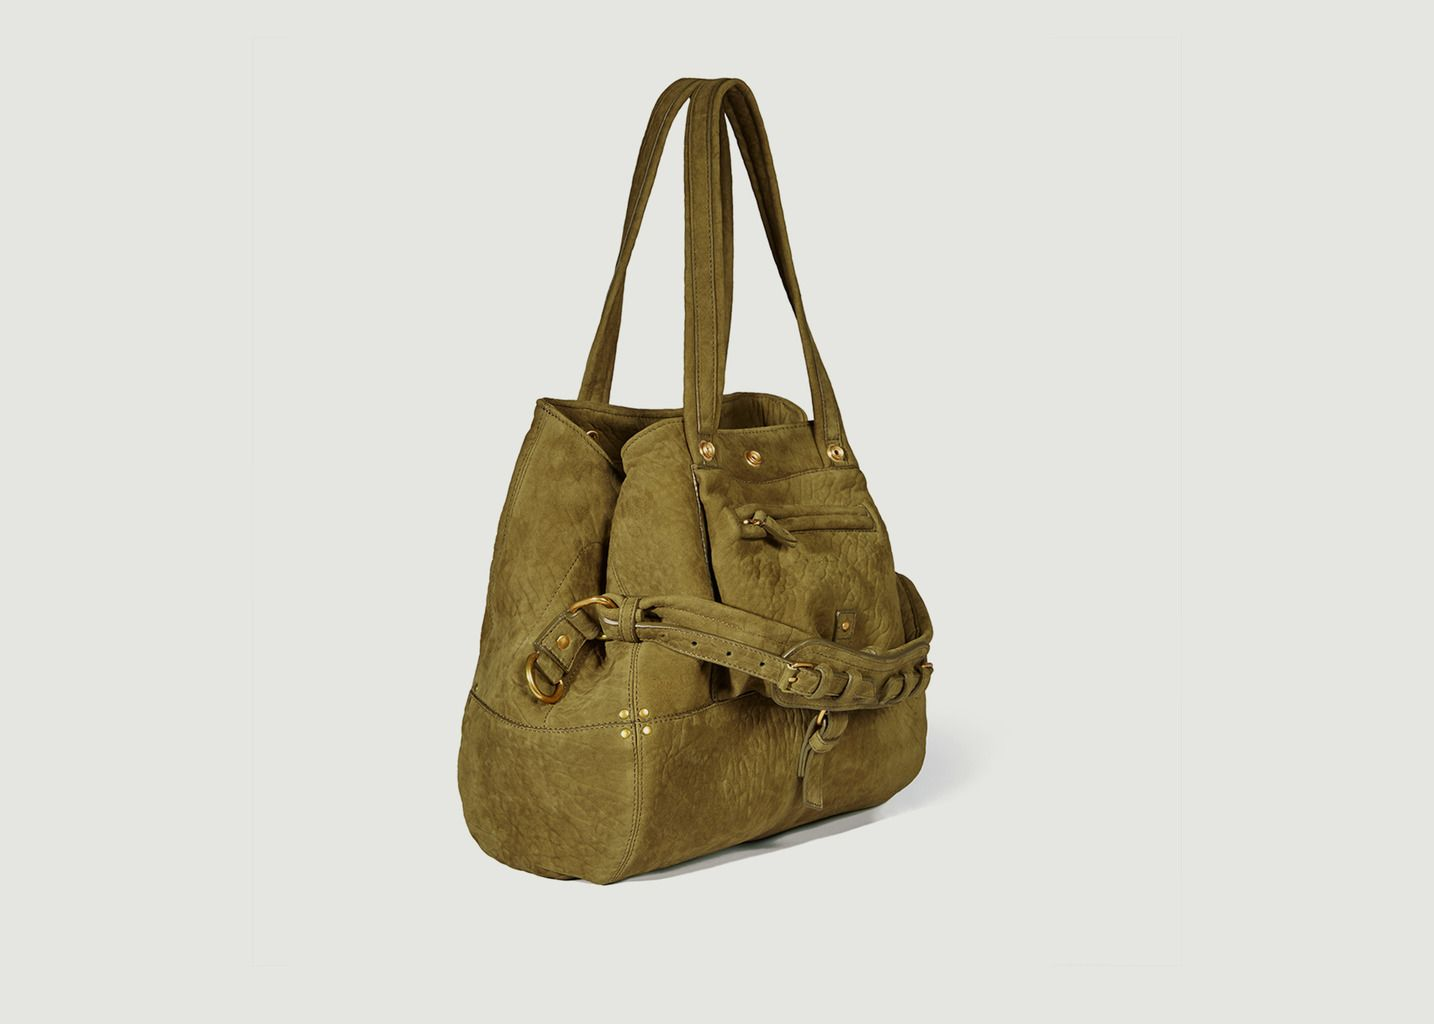 Sac En Cuir Bubble Billy M - Jérôme Dreyfuss